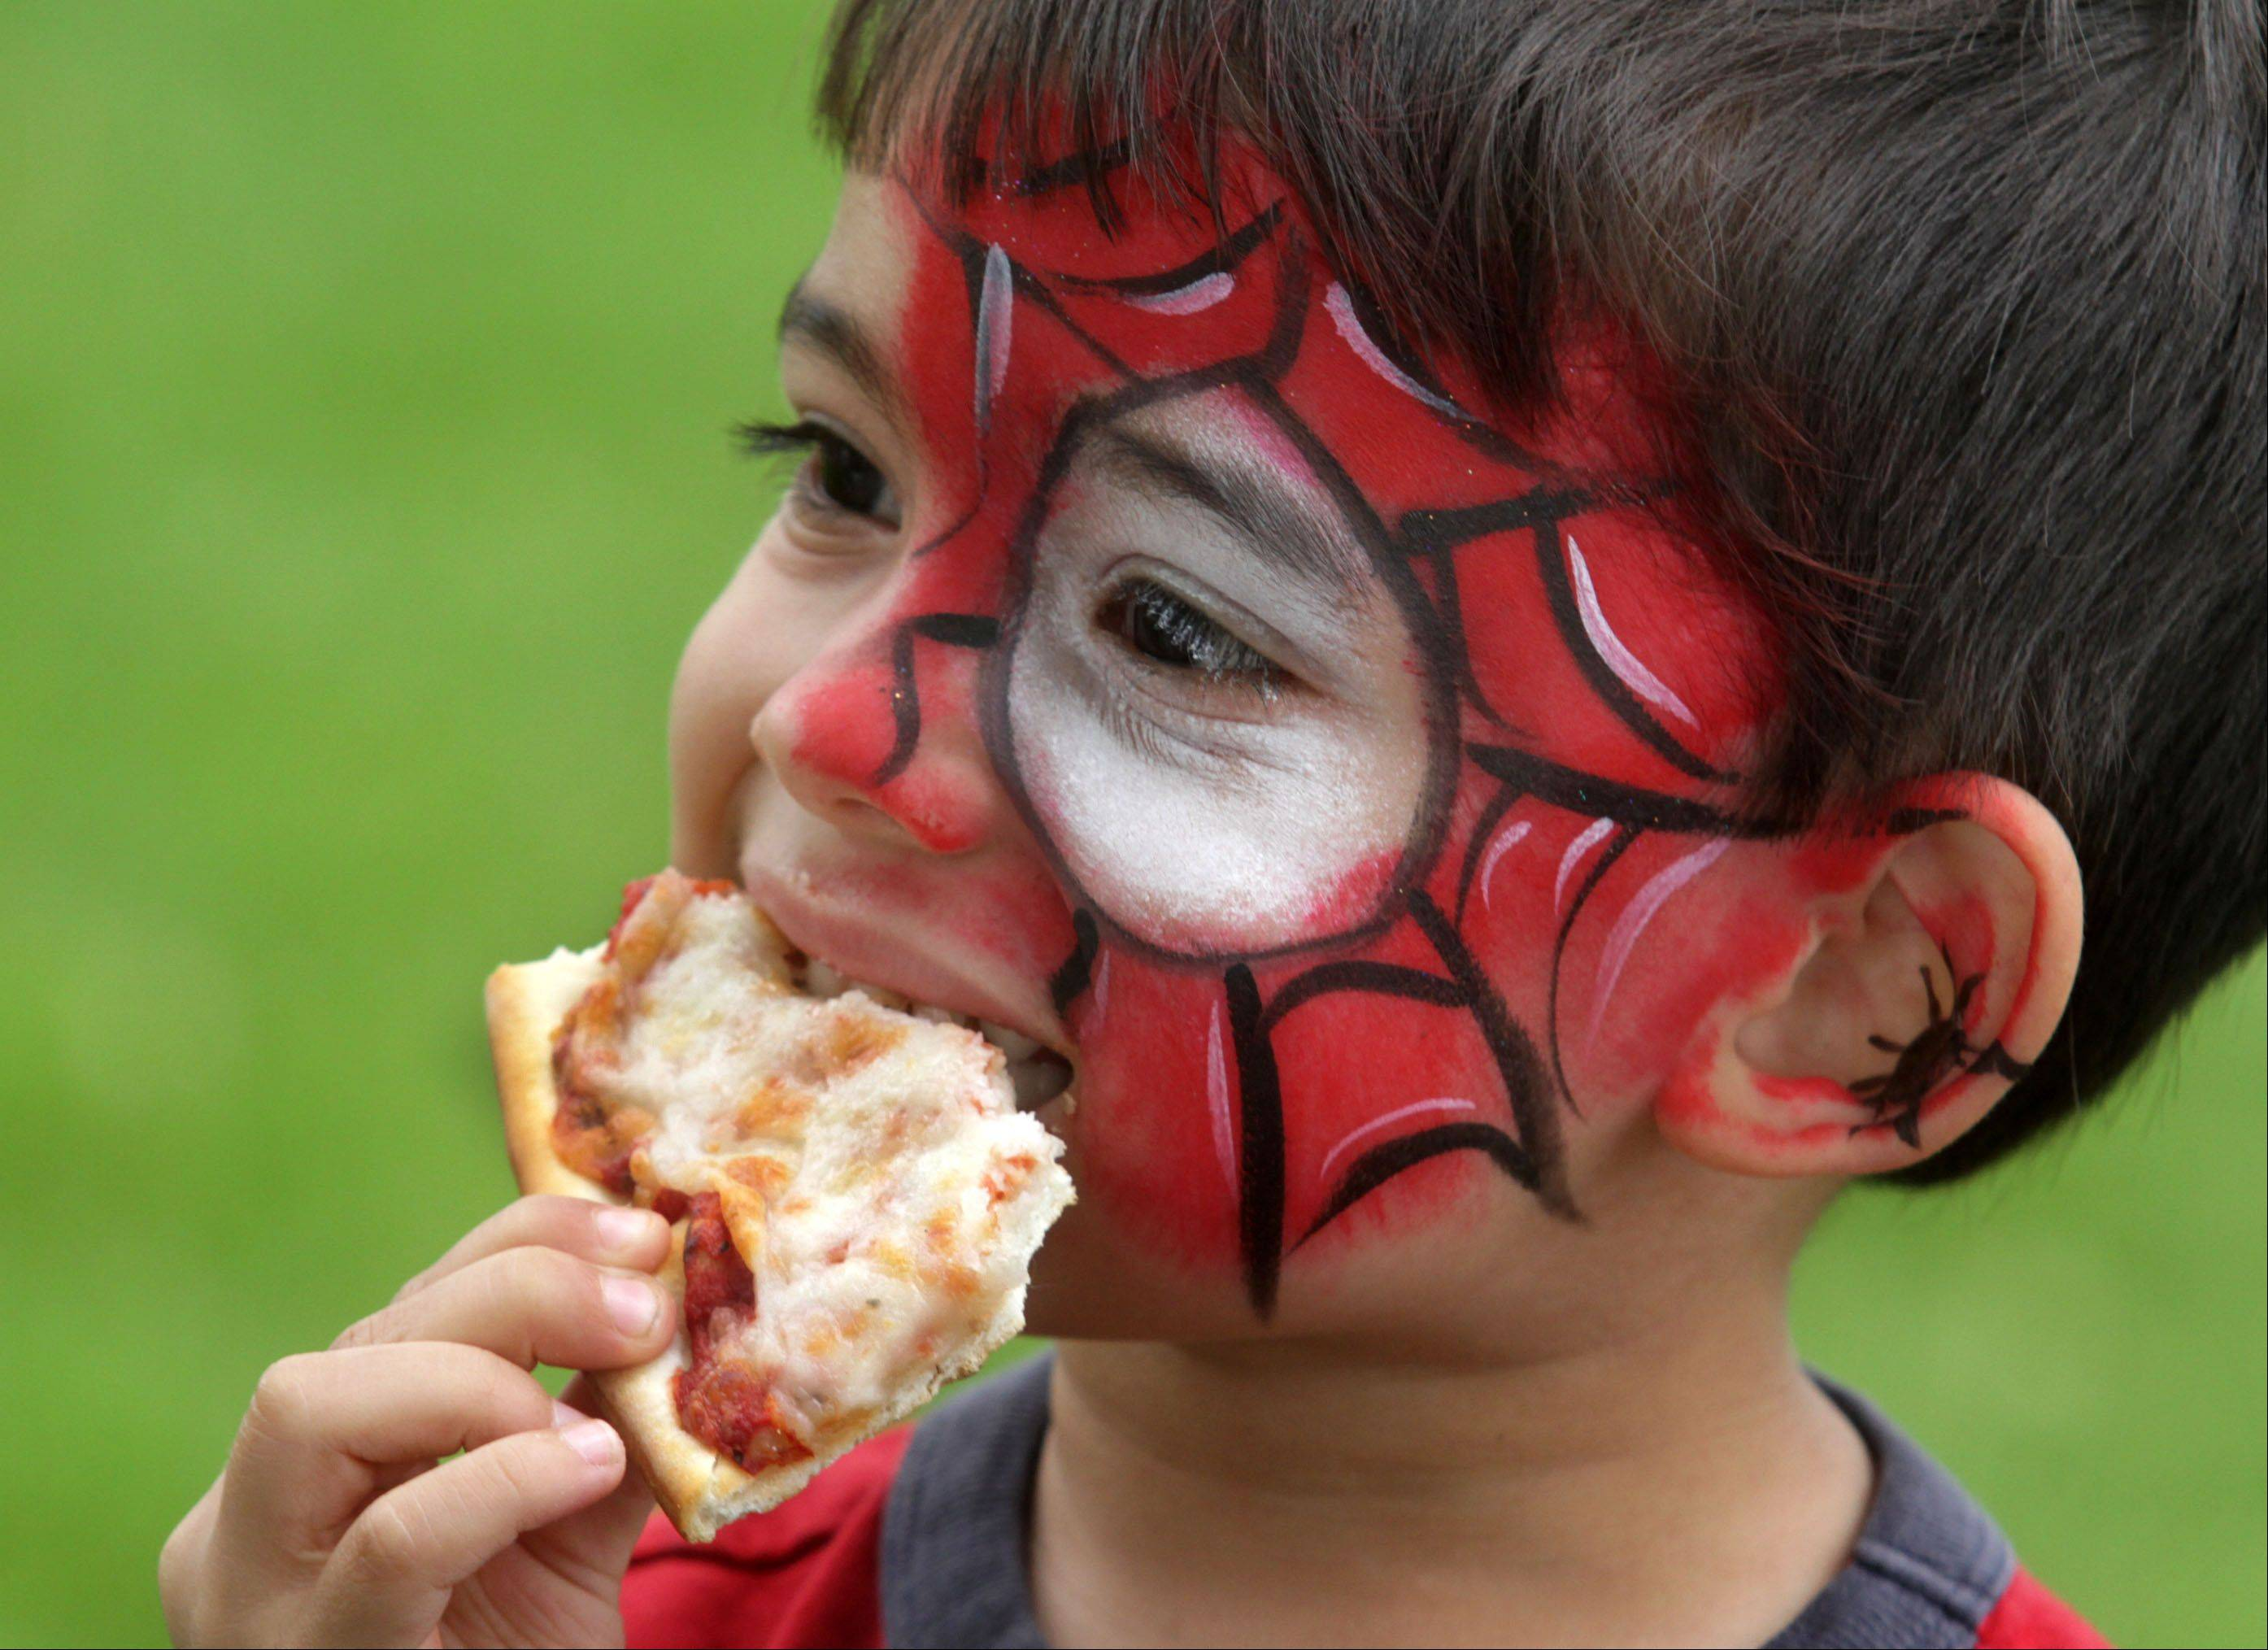 Myles Patten-Muzones has an eye for pizza pie after having his face painted at Art in the Park at Lehmann Park in Lake Villa on Saturday. Myles was at the event with his mom Michele Van Patten-Muzones, who was showing art.